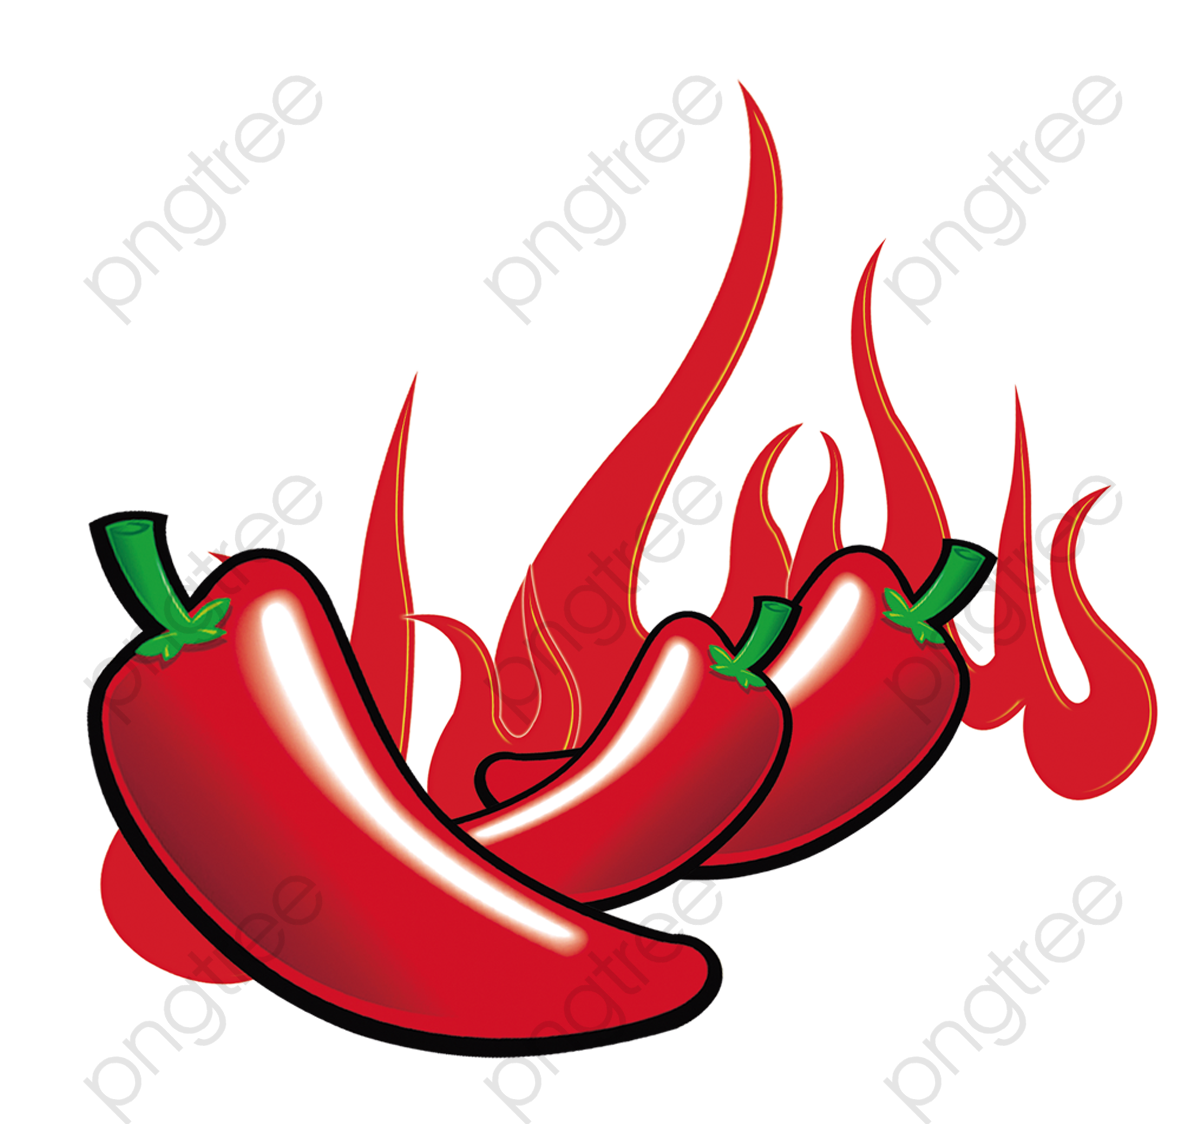 Spicy Png & Free Spicy.png Transparent Images #33799.